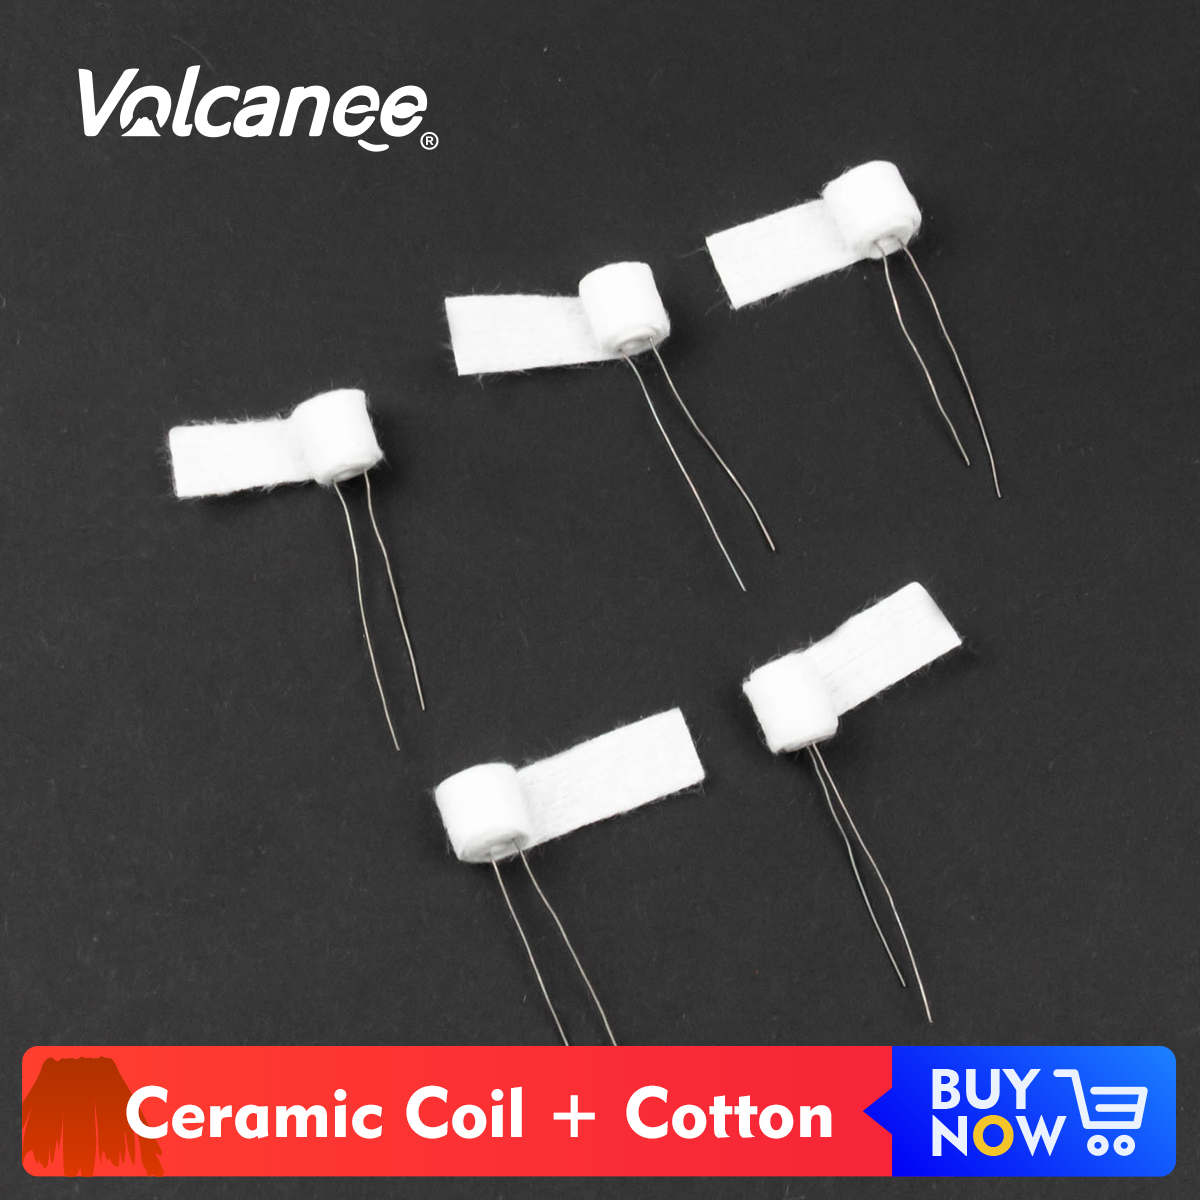 Volcanee Premade Ceramic Coil Cotton Sliver 1.0ohm 1.2ohm Oil-Absorbing For CBD Vape Cartridge DIY ECig Ceramic Heating Wire